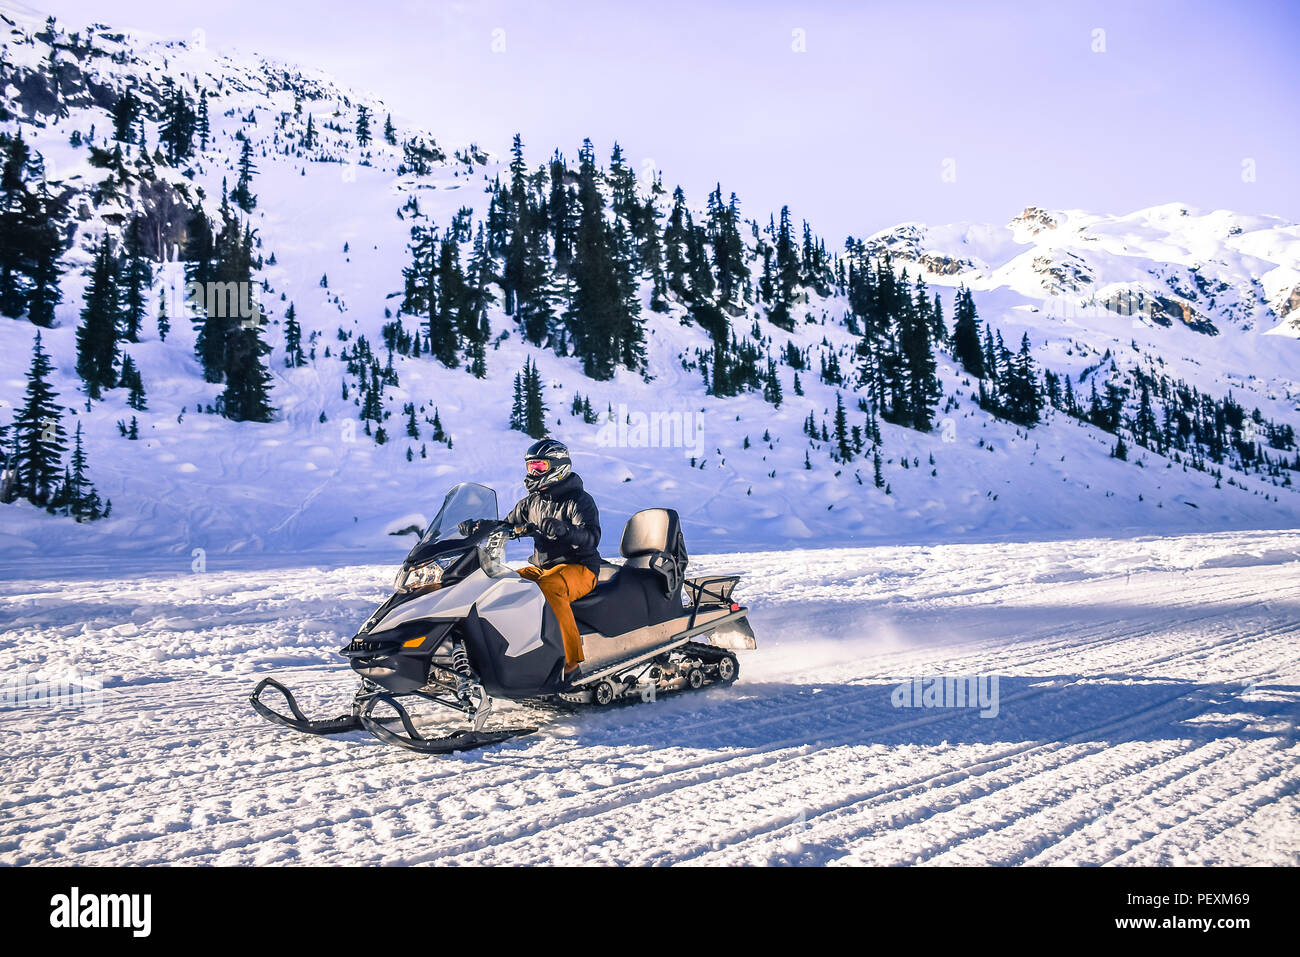 Man riding snowmobile, Callaghan Valley, Whistler, British Columbia, Canada - Stock Image